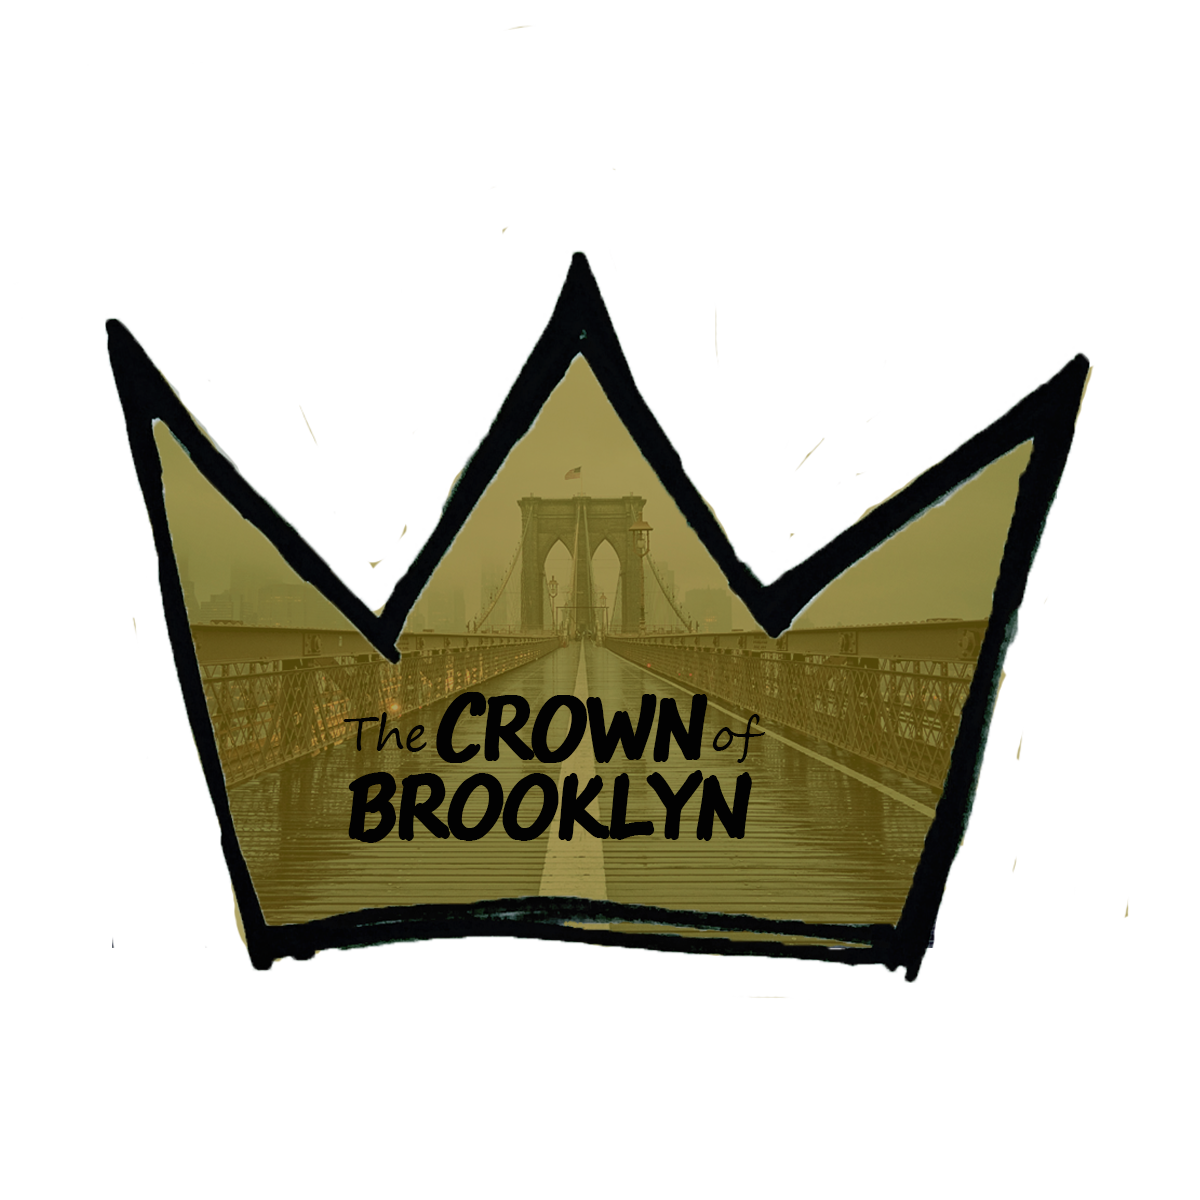 The Crown of Brooklyn